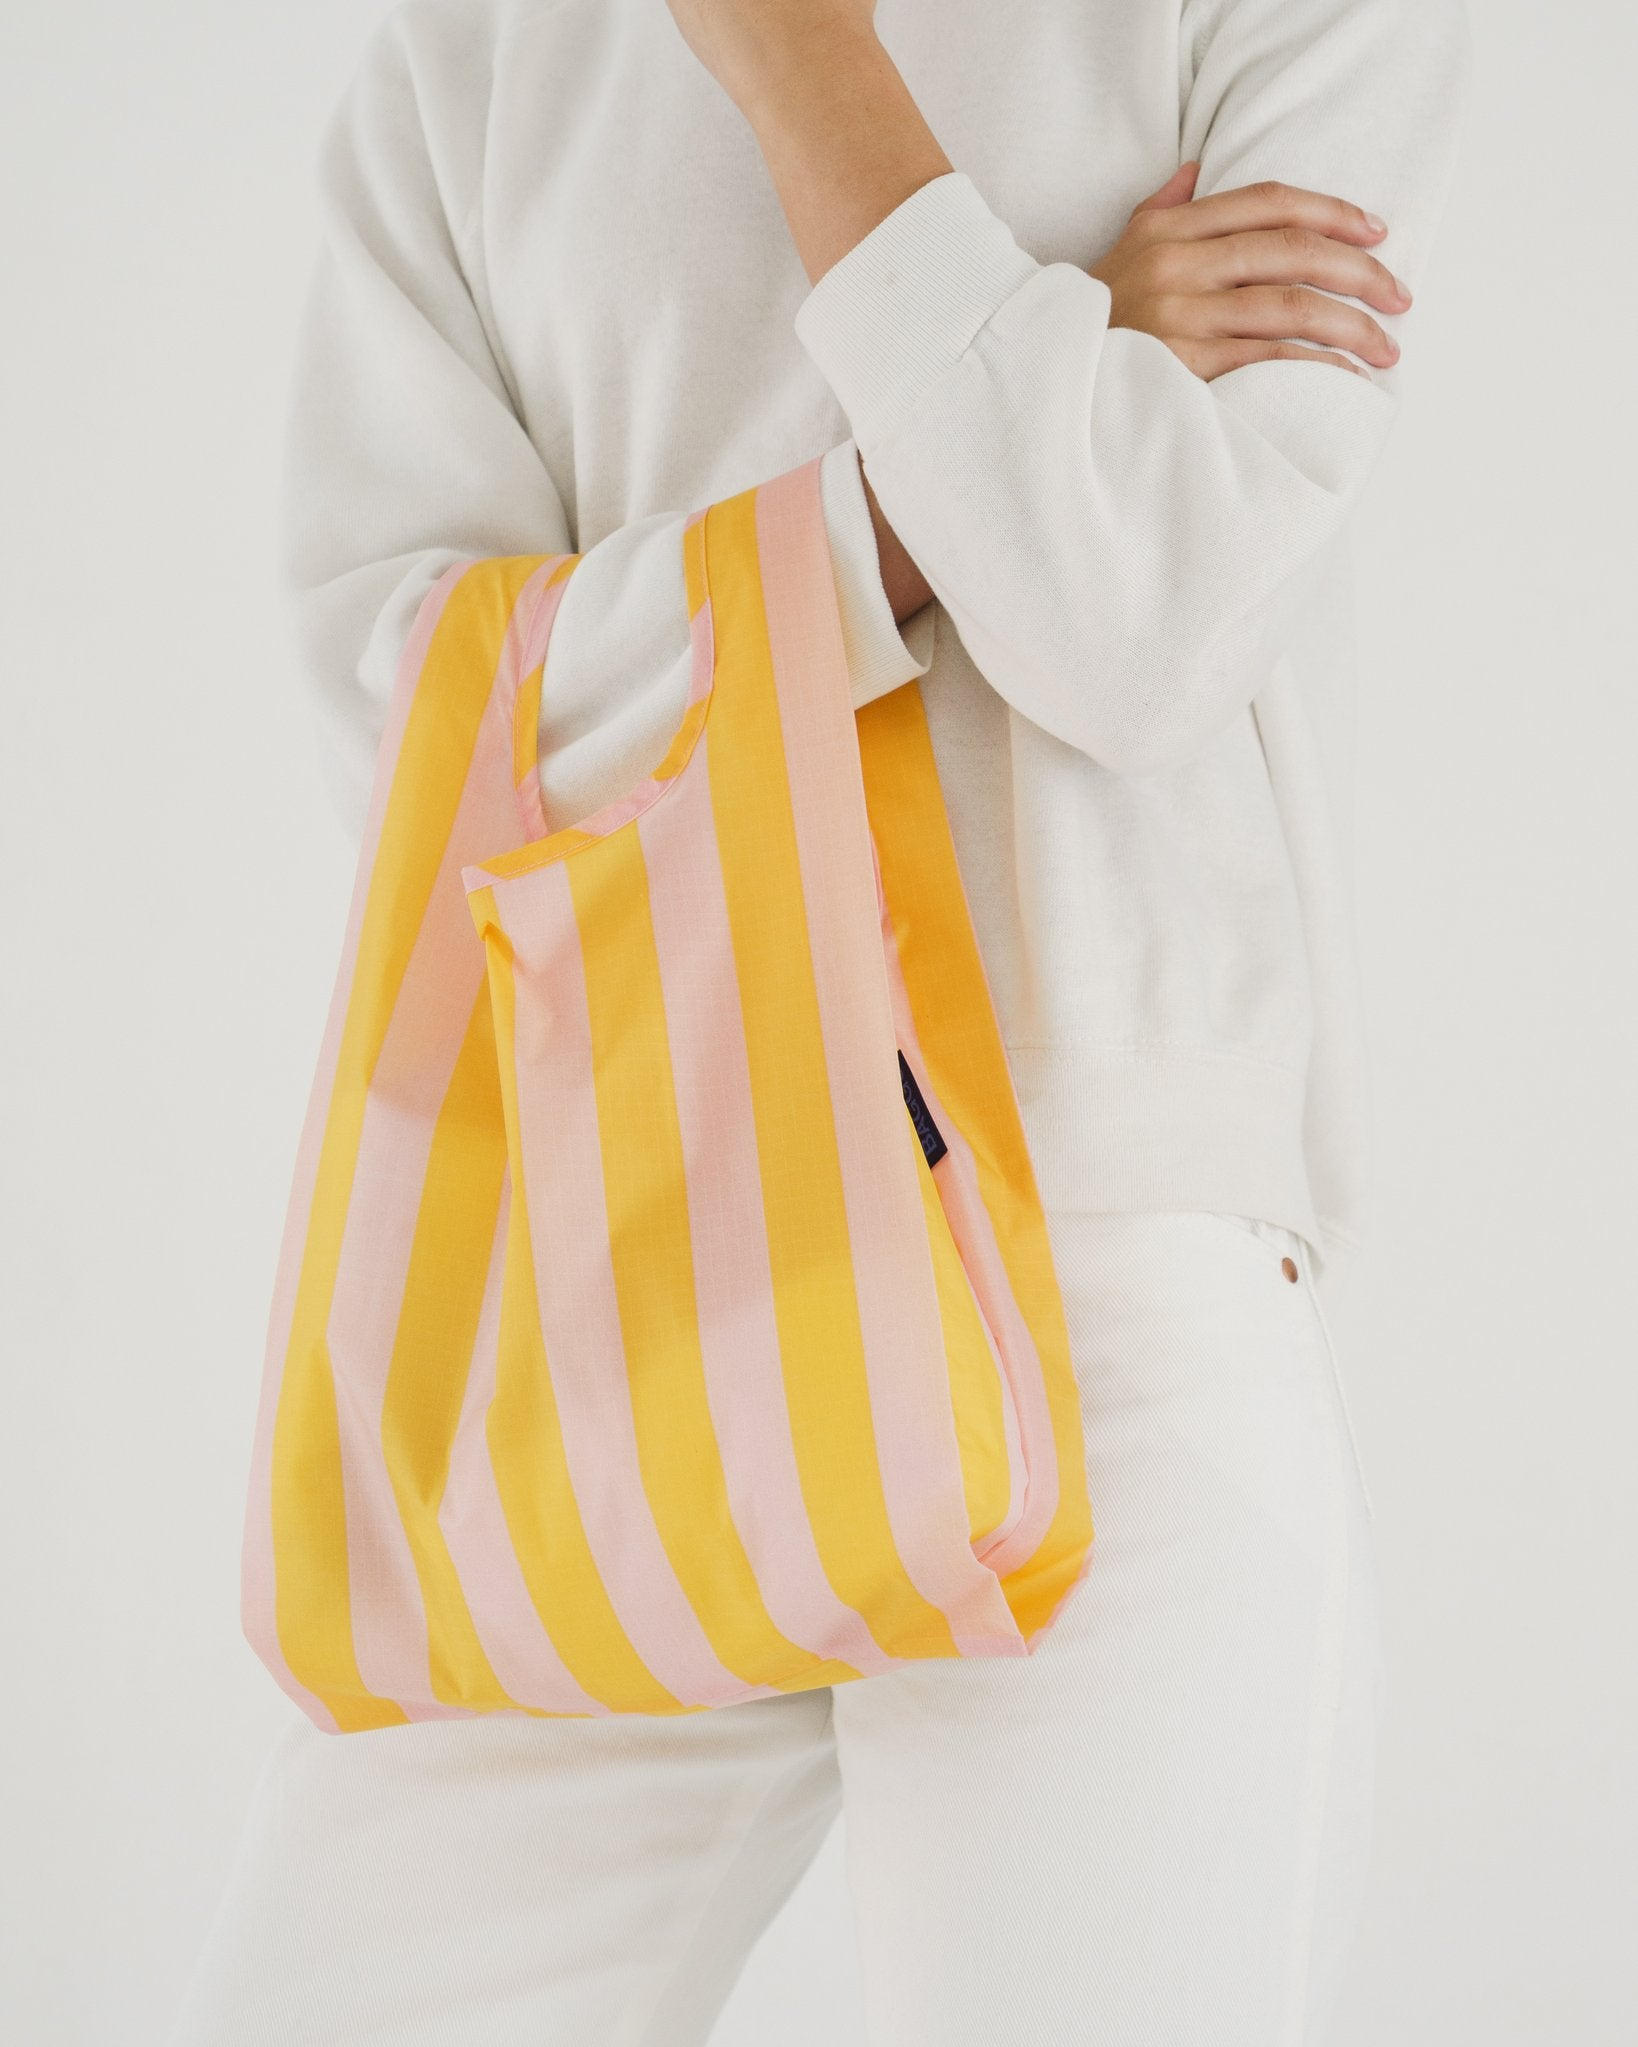 Baby Reusable Tote in Marigold Stripe – GOLDEN RULE GALLERY